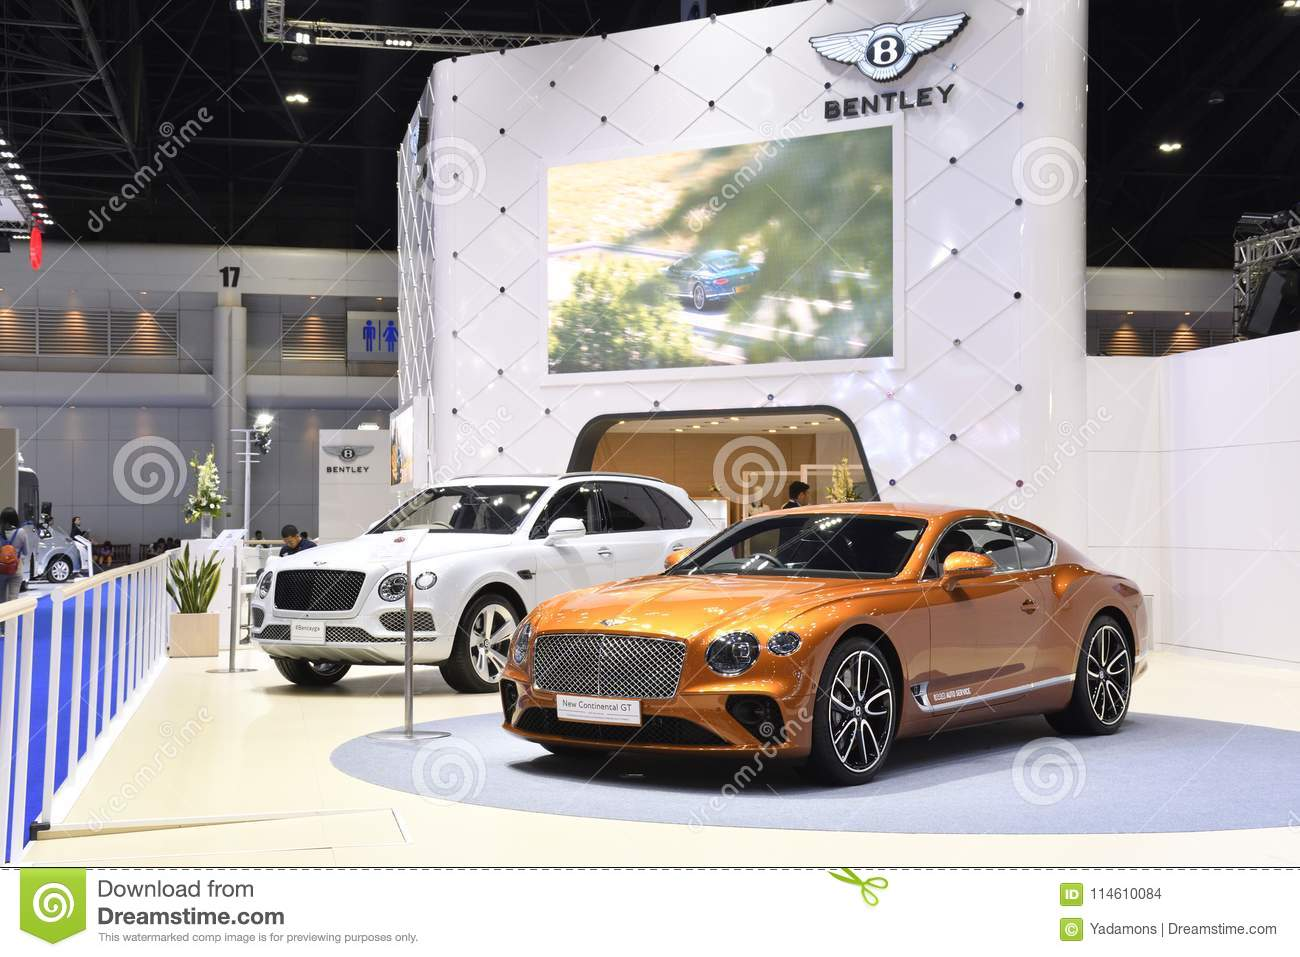 The BENTLEY exhibition booth at THE 39th BANGKOK INTERNATIONAL MOTOR SHOW 2018